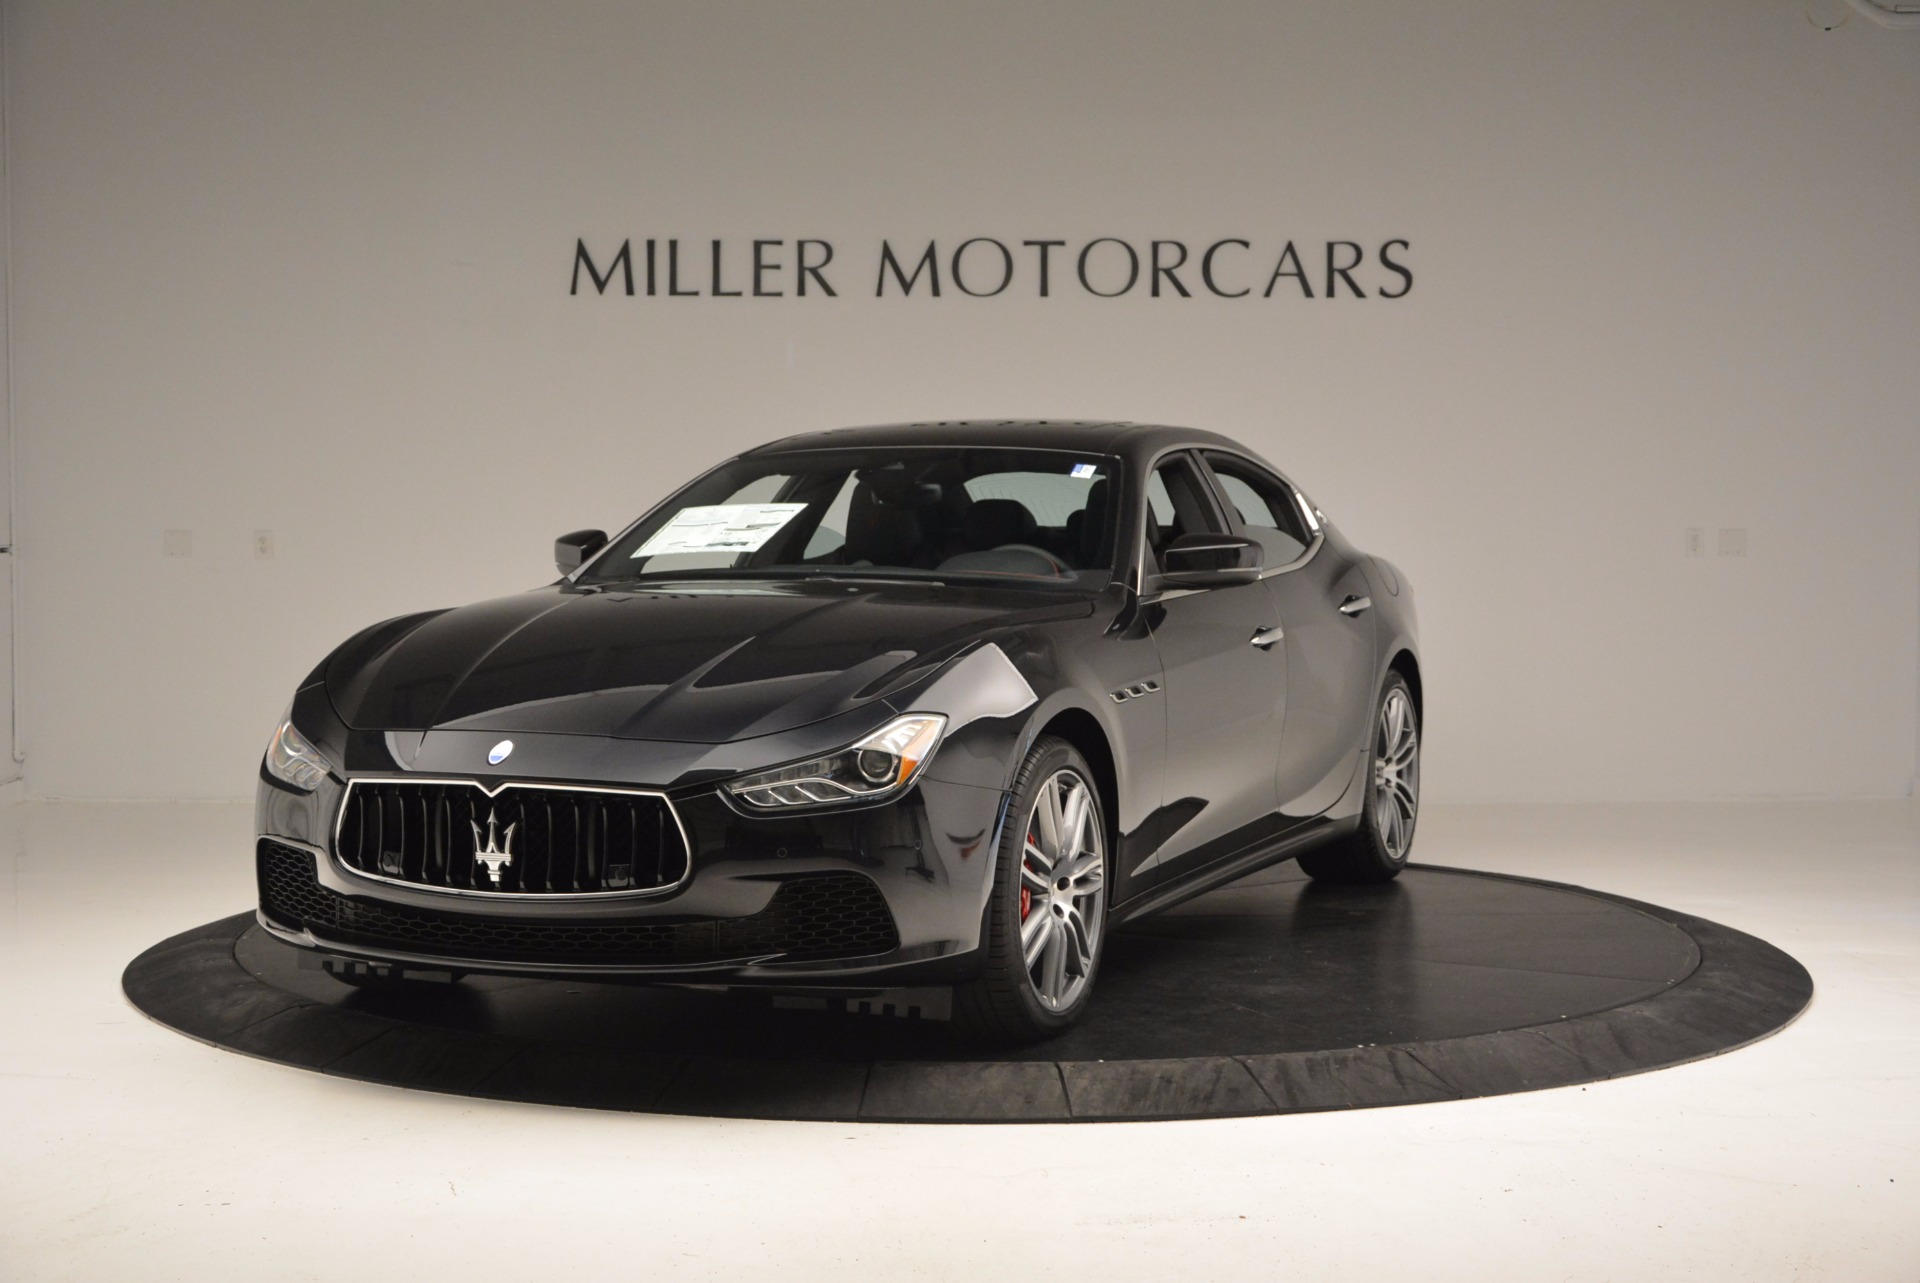 New 2017 Maserati Ghibli SQ4 for sale Sold at Bentley Greenwich in Greenwich CT 06830 1